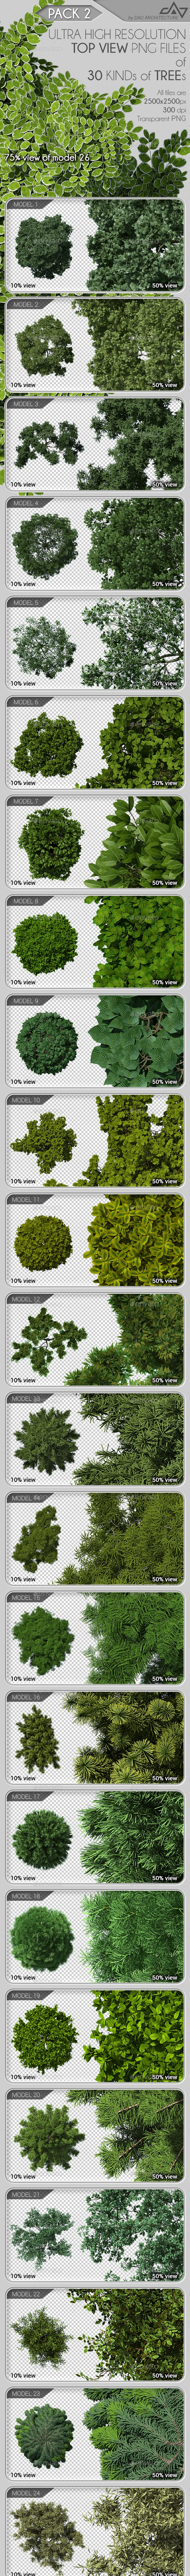 Top View Trees Pack 2 - Objects Illustrations